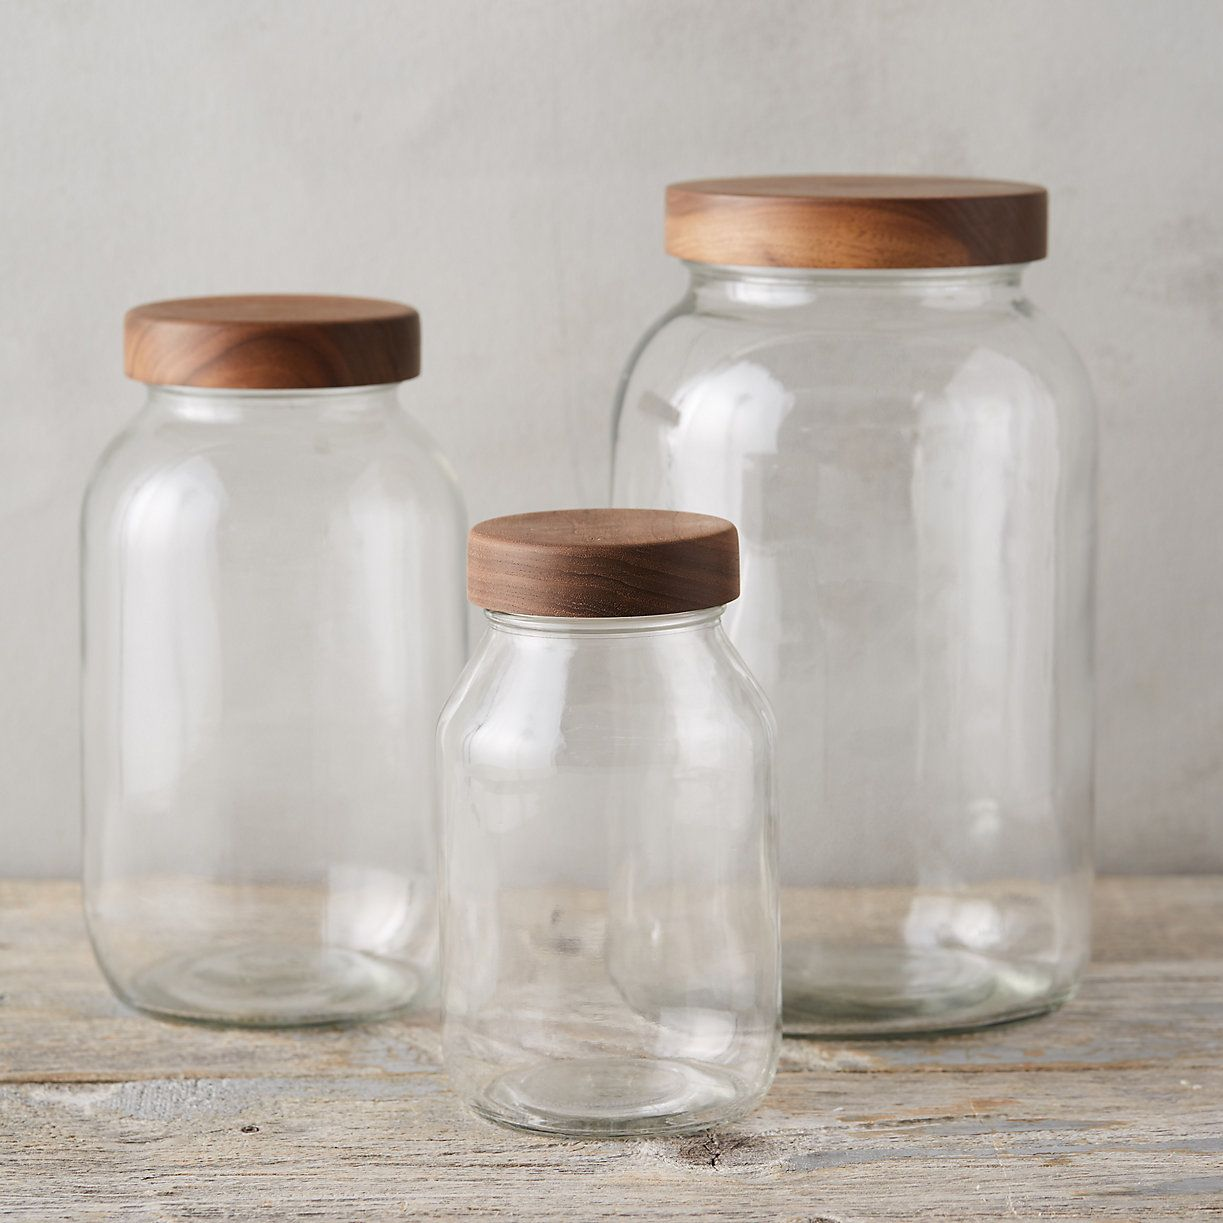 A pretty and practical option for pantry storage, this glass jar features a hand-turned walnut lid. Concealed by the walnut exterior, a metal cap and